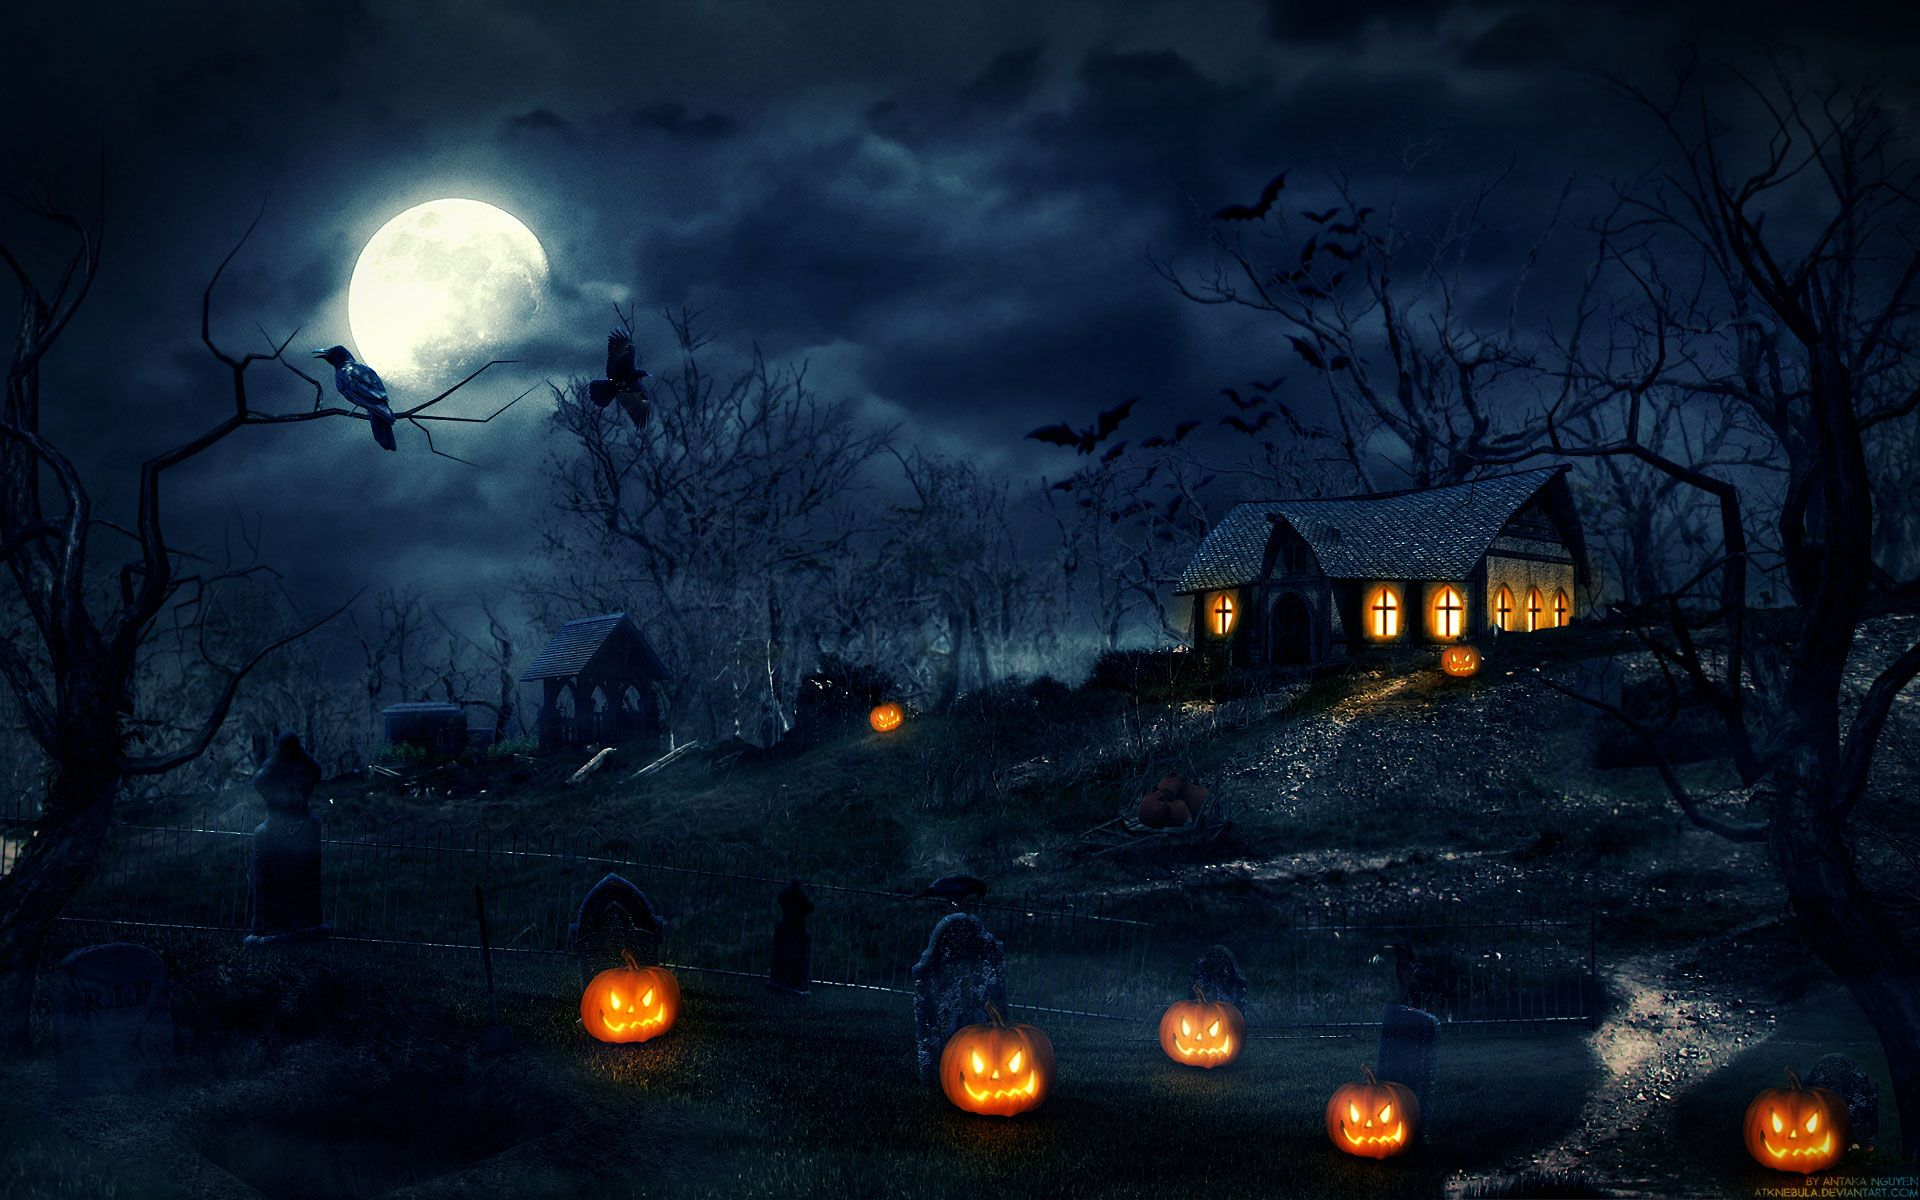 Great Wallpaper High Resolution Halloween - 03bd7123e8c83547d9eb26f389f15c8e  Photograph_528779.jpg